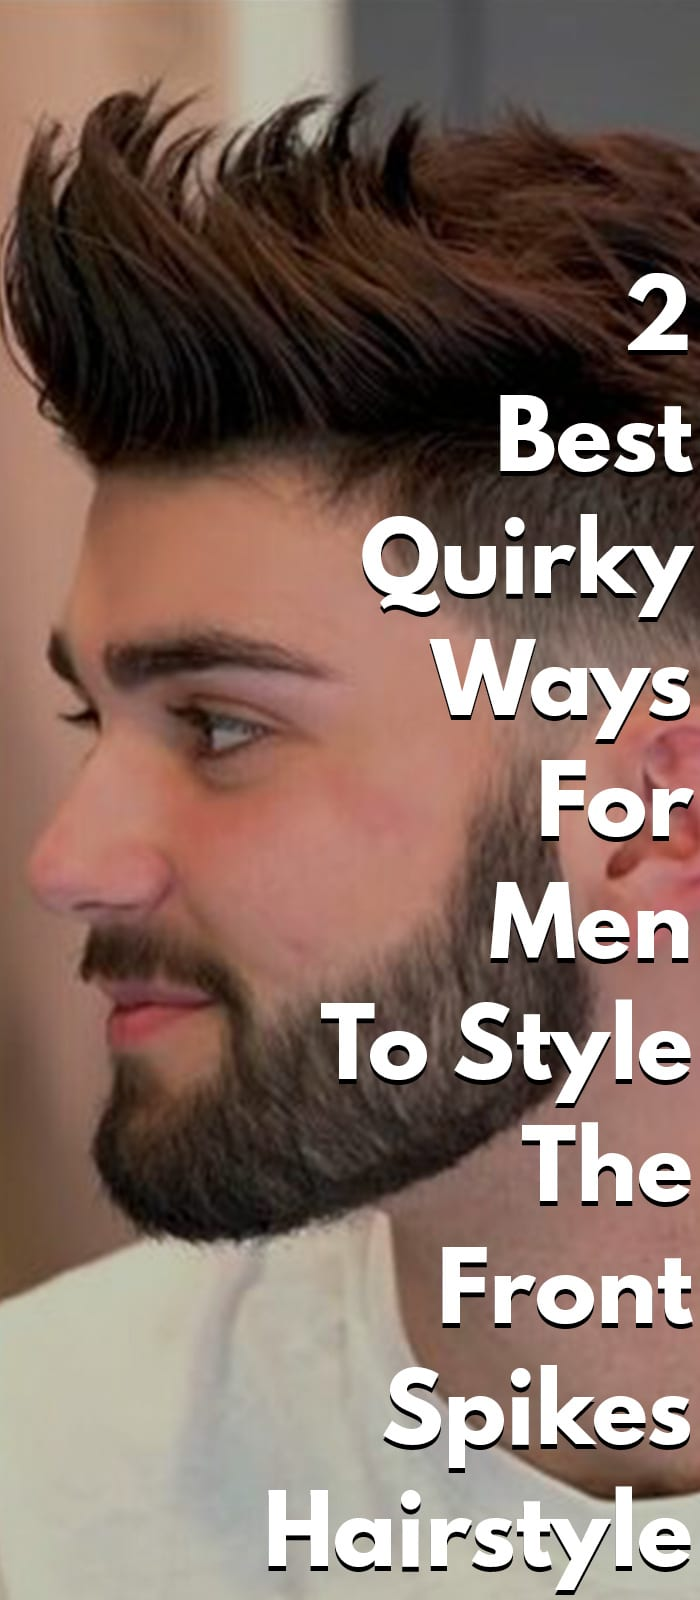 2 Best Quirky Ways For Men To Style The Front Spikes Hairstyle